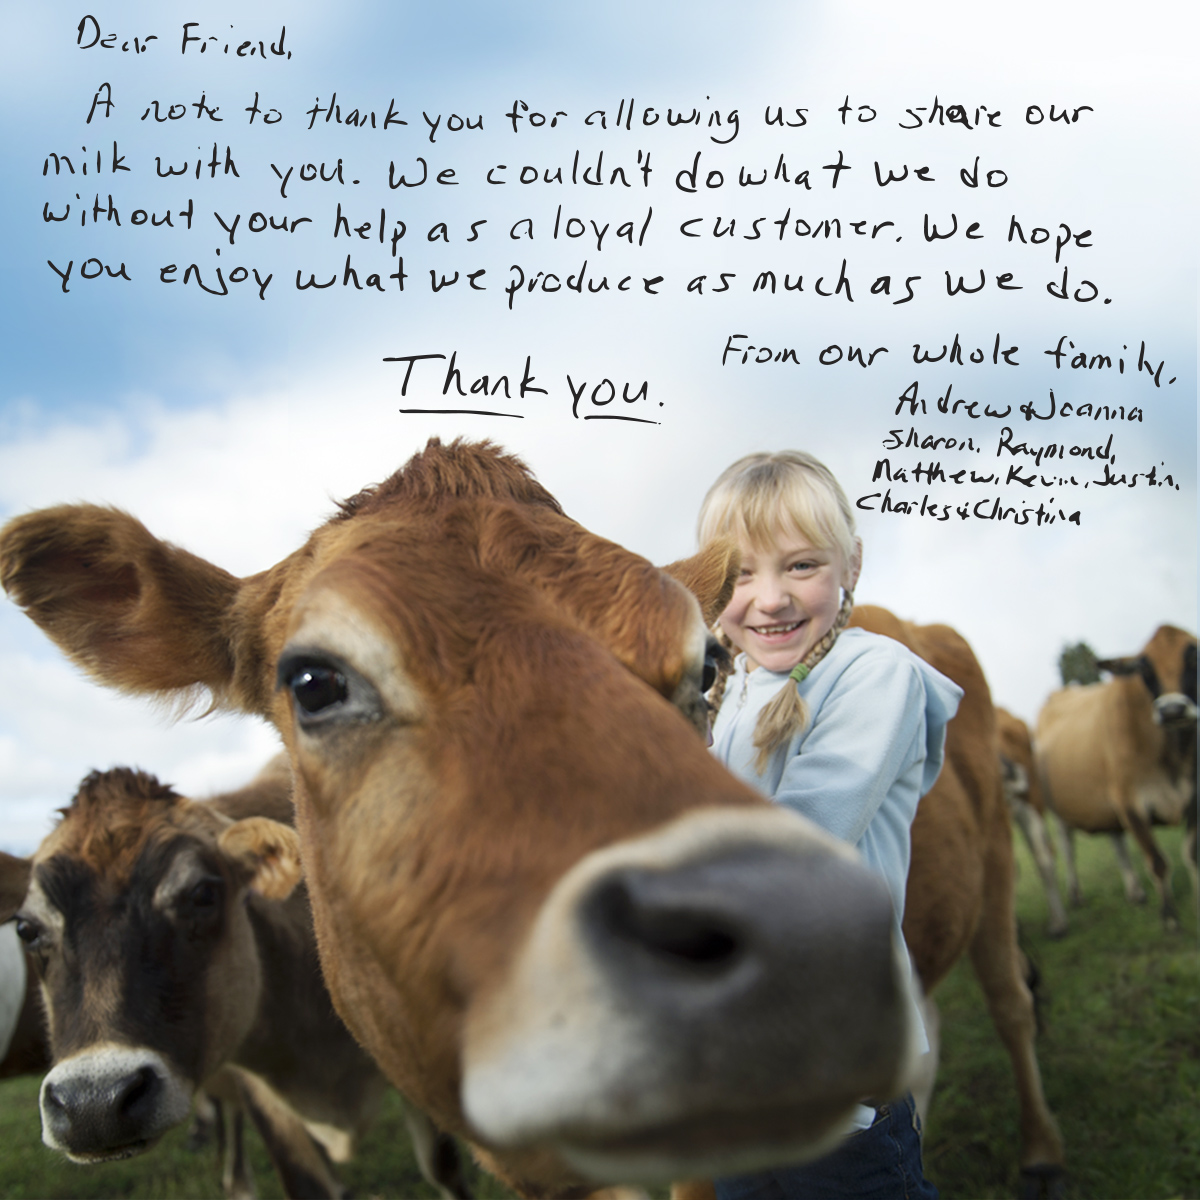 A farm family says thank you for allowing us to share our milk with you.